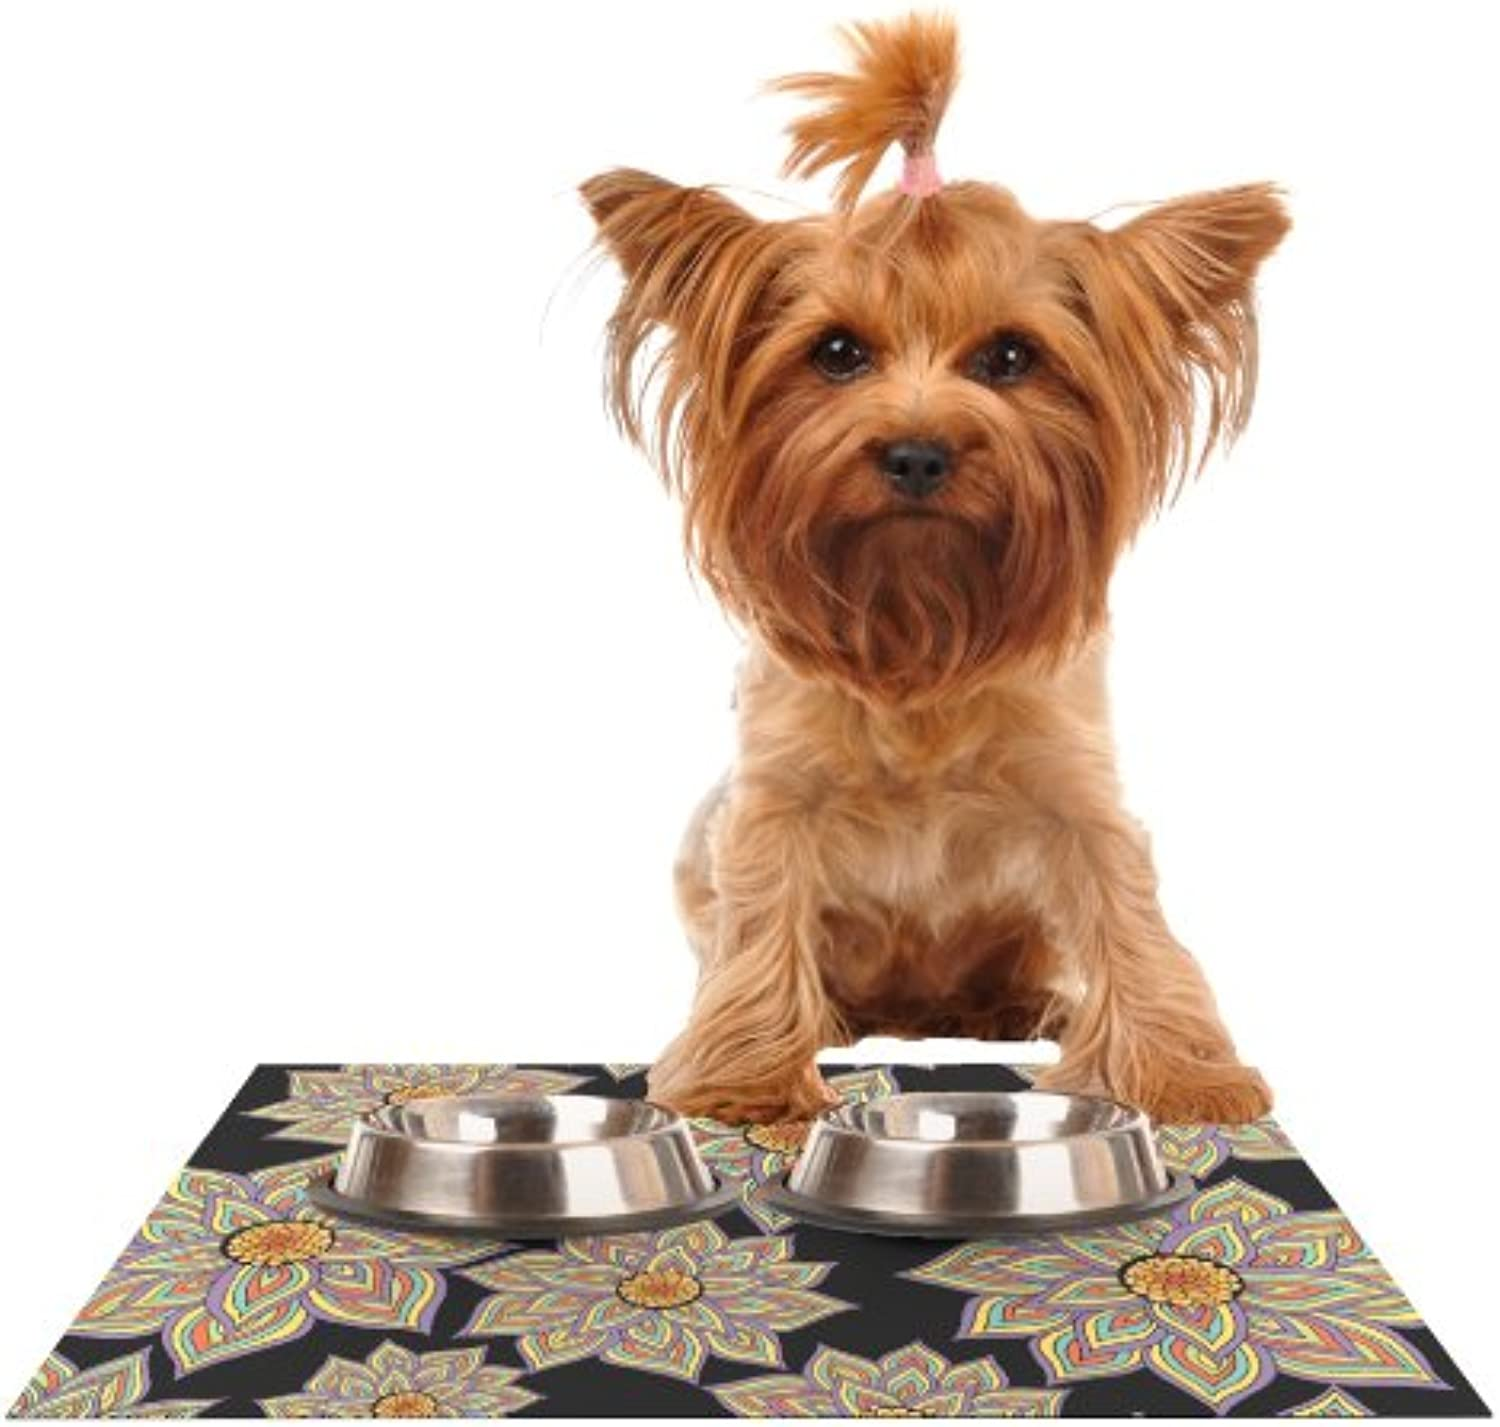 Kess InHouse Pom Graphic Design Floral Dance in The Dark  Feeding Mat for Pet Bowl, 18 by 13Inch